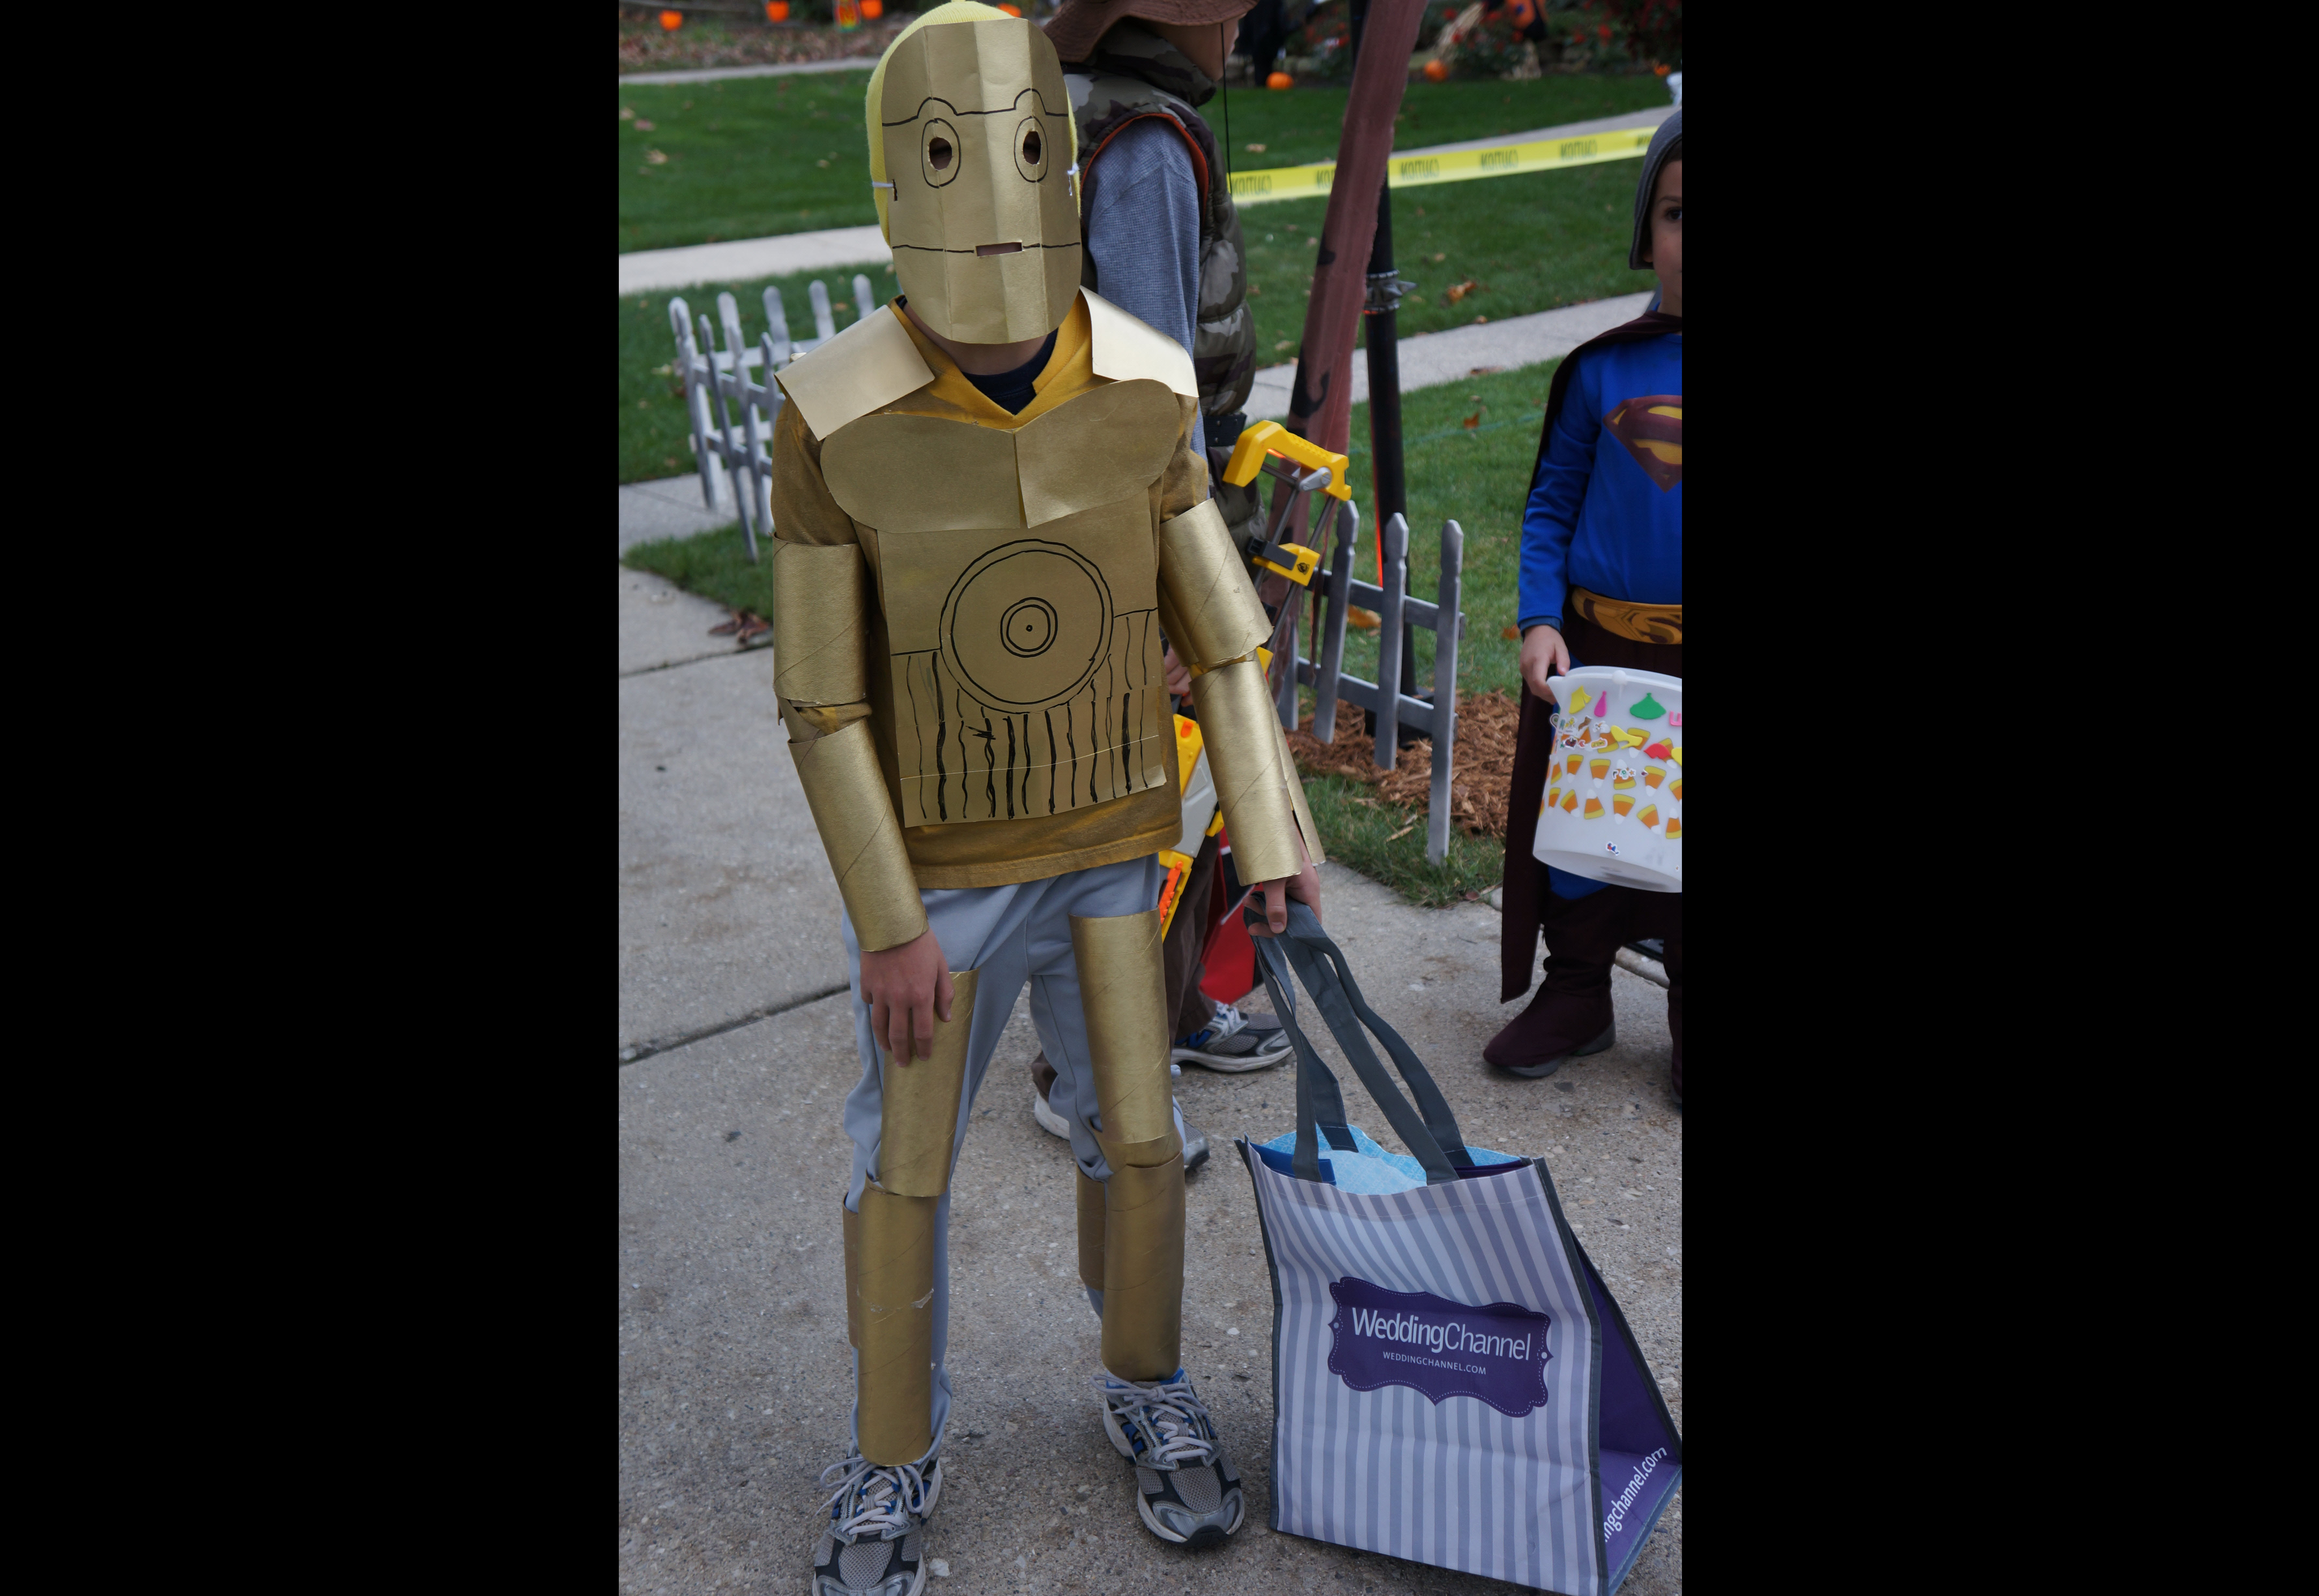 From pokemon to star wars 20 diy halloween costumes every kid khaki pants with ace wraps wound around the lower legs complete the look with light saber in hand the force is with this awesome costume solutioingenieria Images